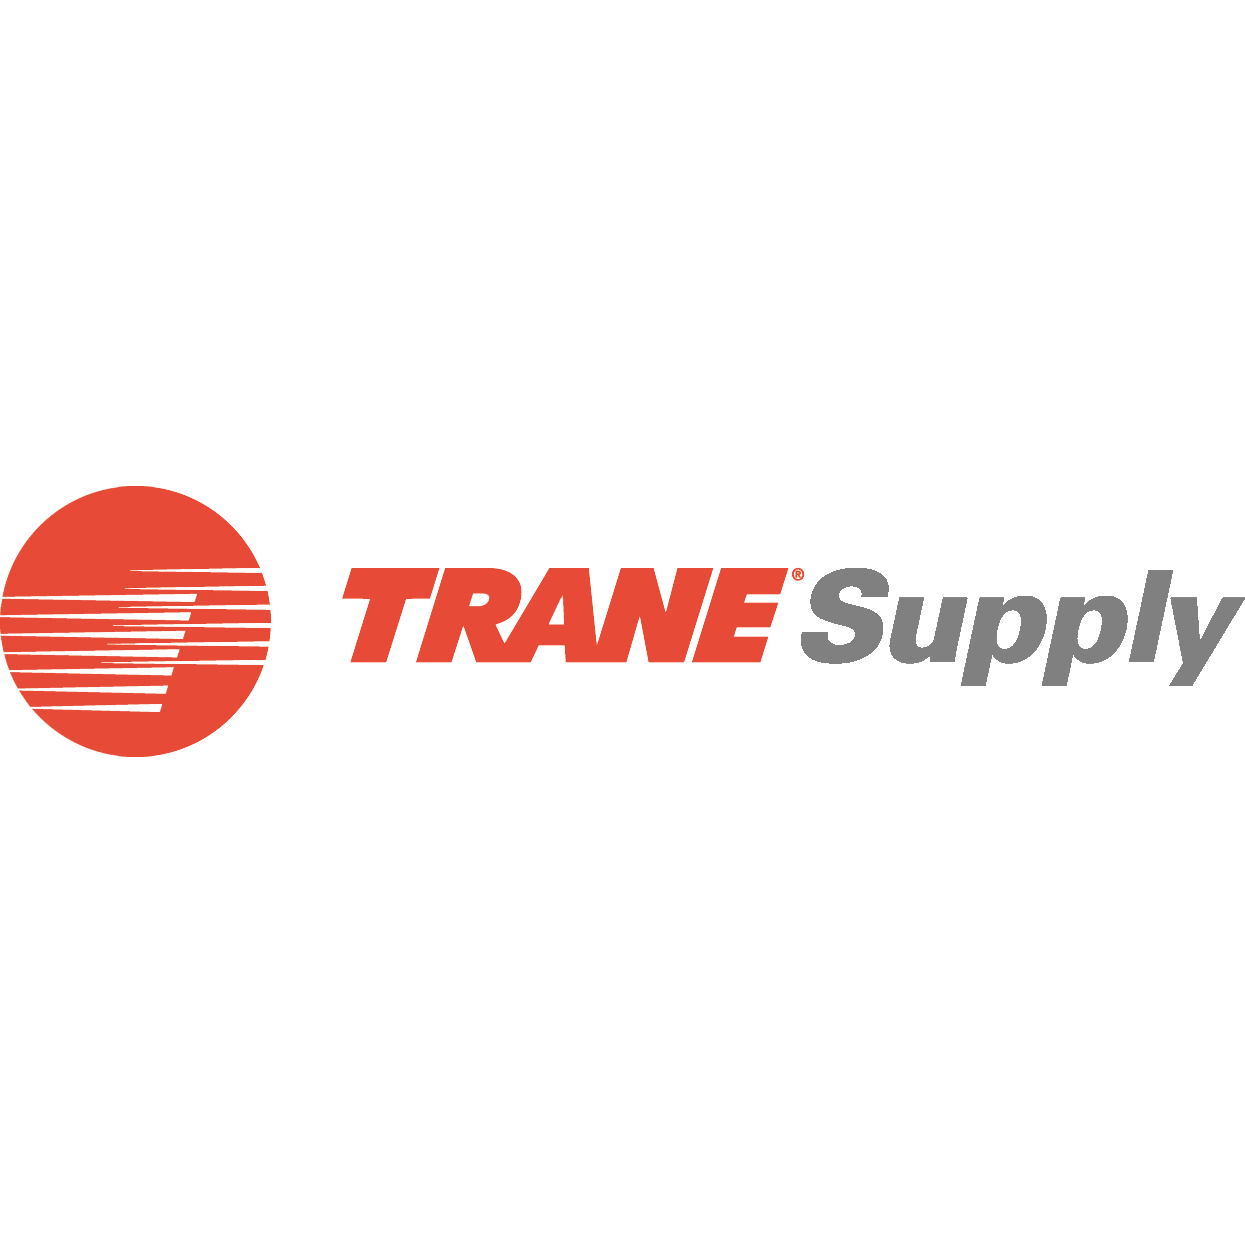 Trane Supply - Charlotte, NC - Heating & Air Conditioning